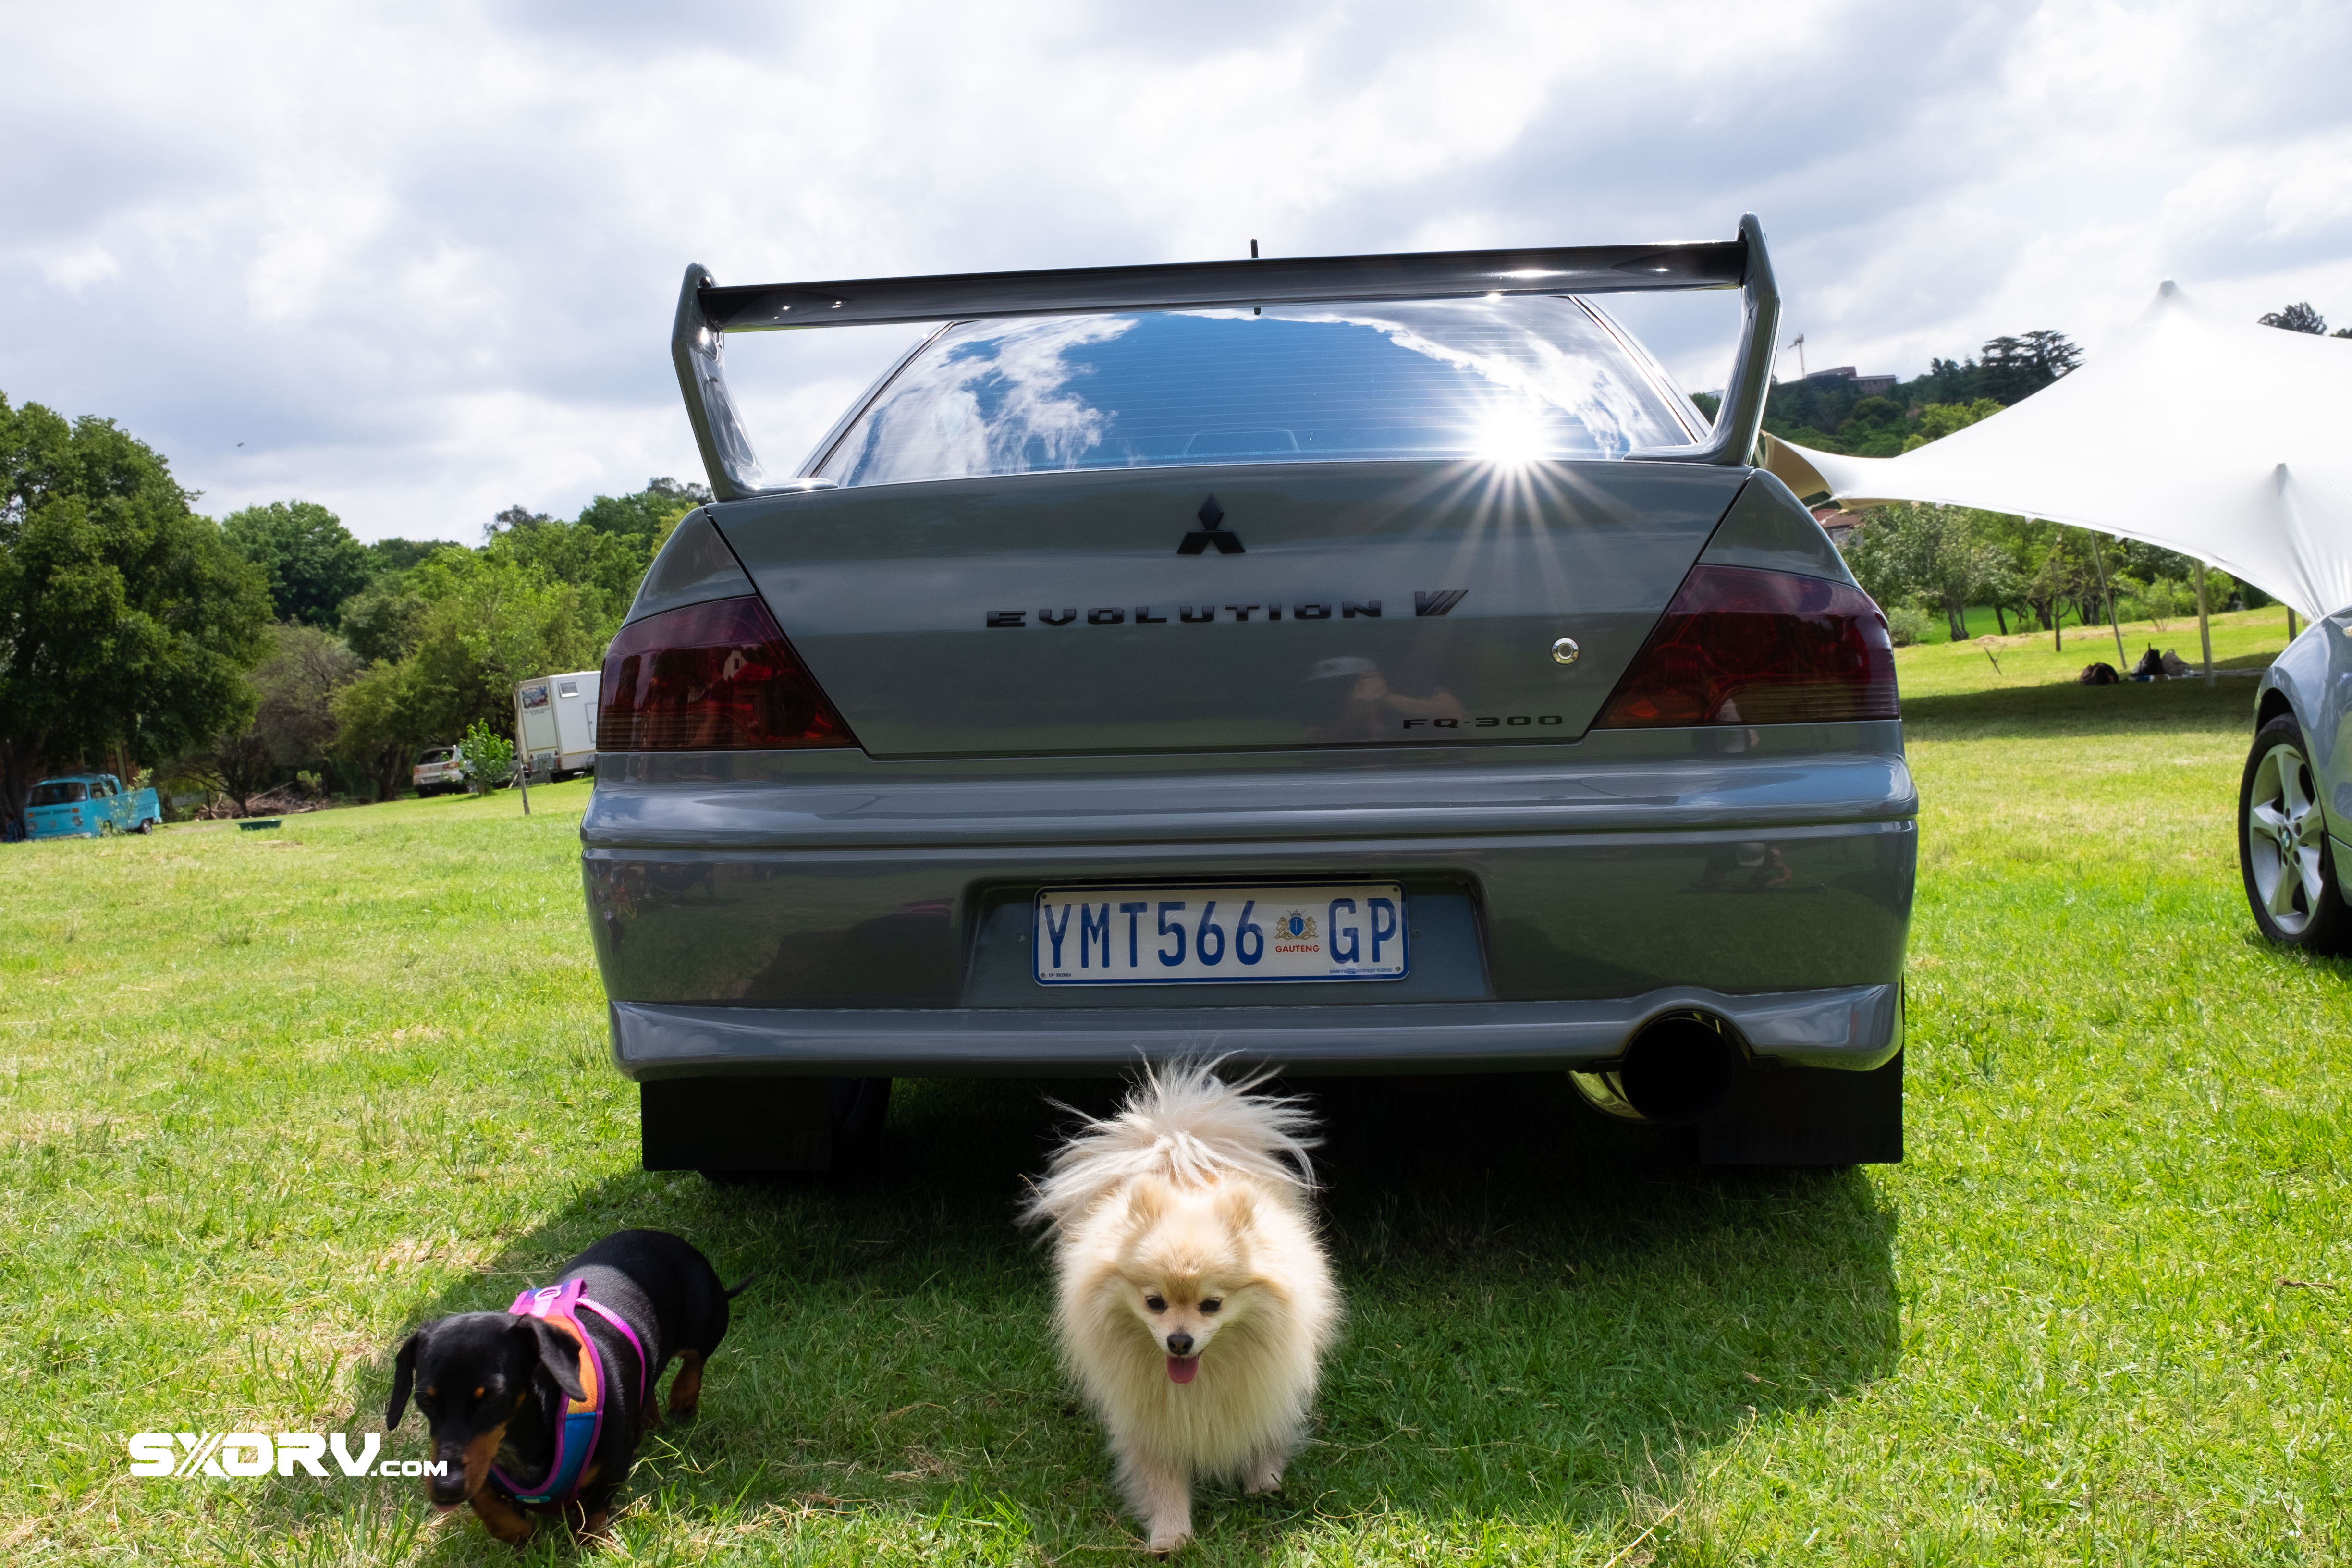 news,event,events,cayman,porsche,mazda rx8,350z,nissan,park off,rescue,animal,woodrock,puppies in the park,south africa,volkswagen club,vwcsa,Automotive,Cars,